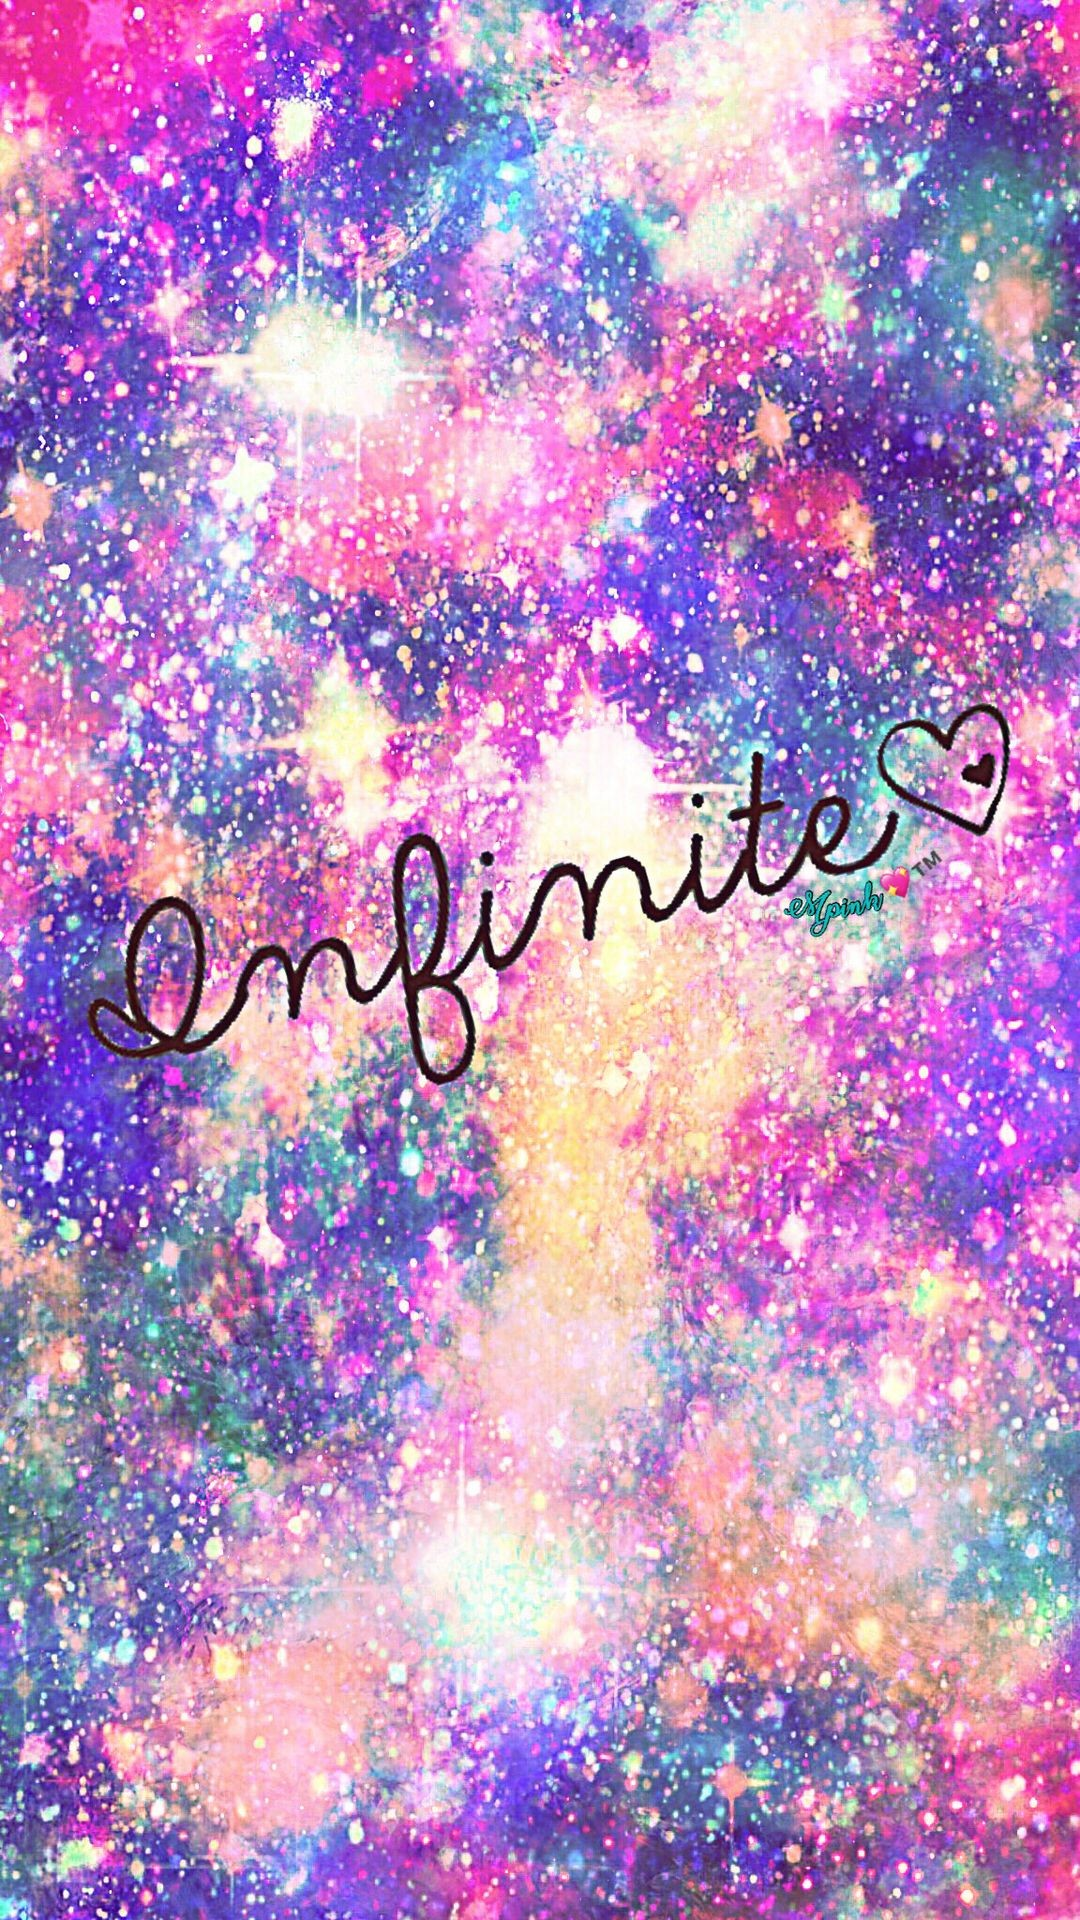 Res: 1080x1920, Infinite Galaxy Wallpaper #androidwallpaper #iphonewallpaper #wallpaper # galaxy #sparkle #glitter #